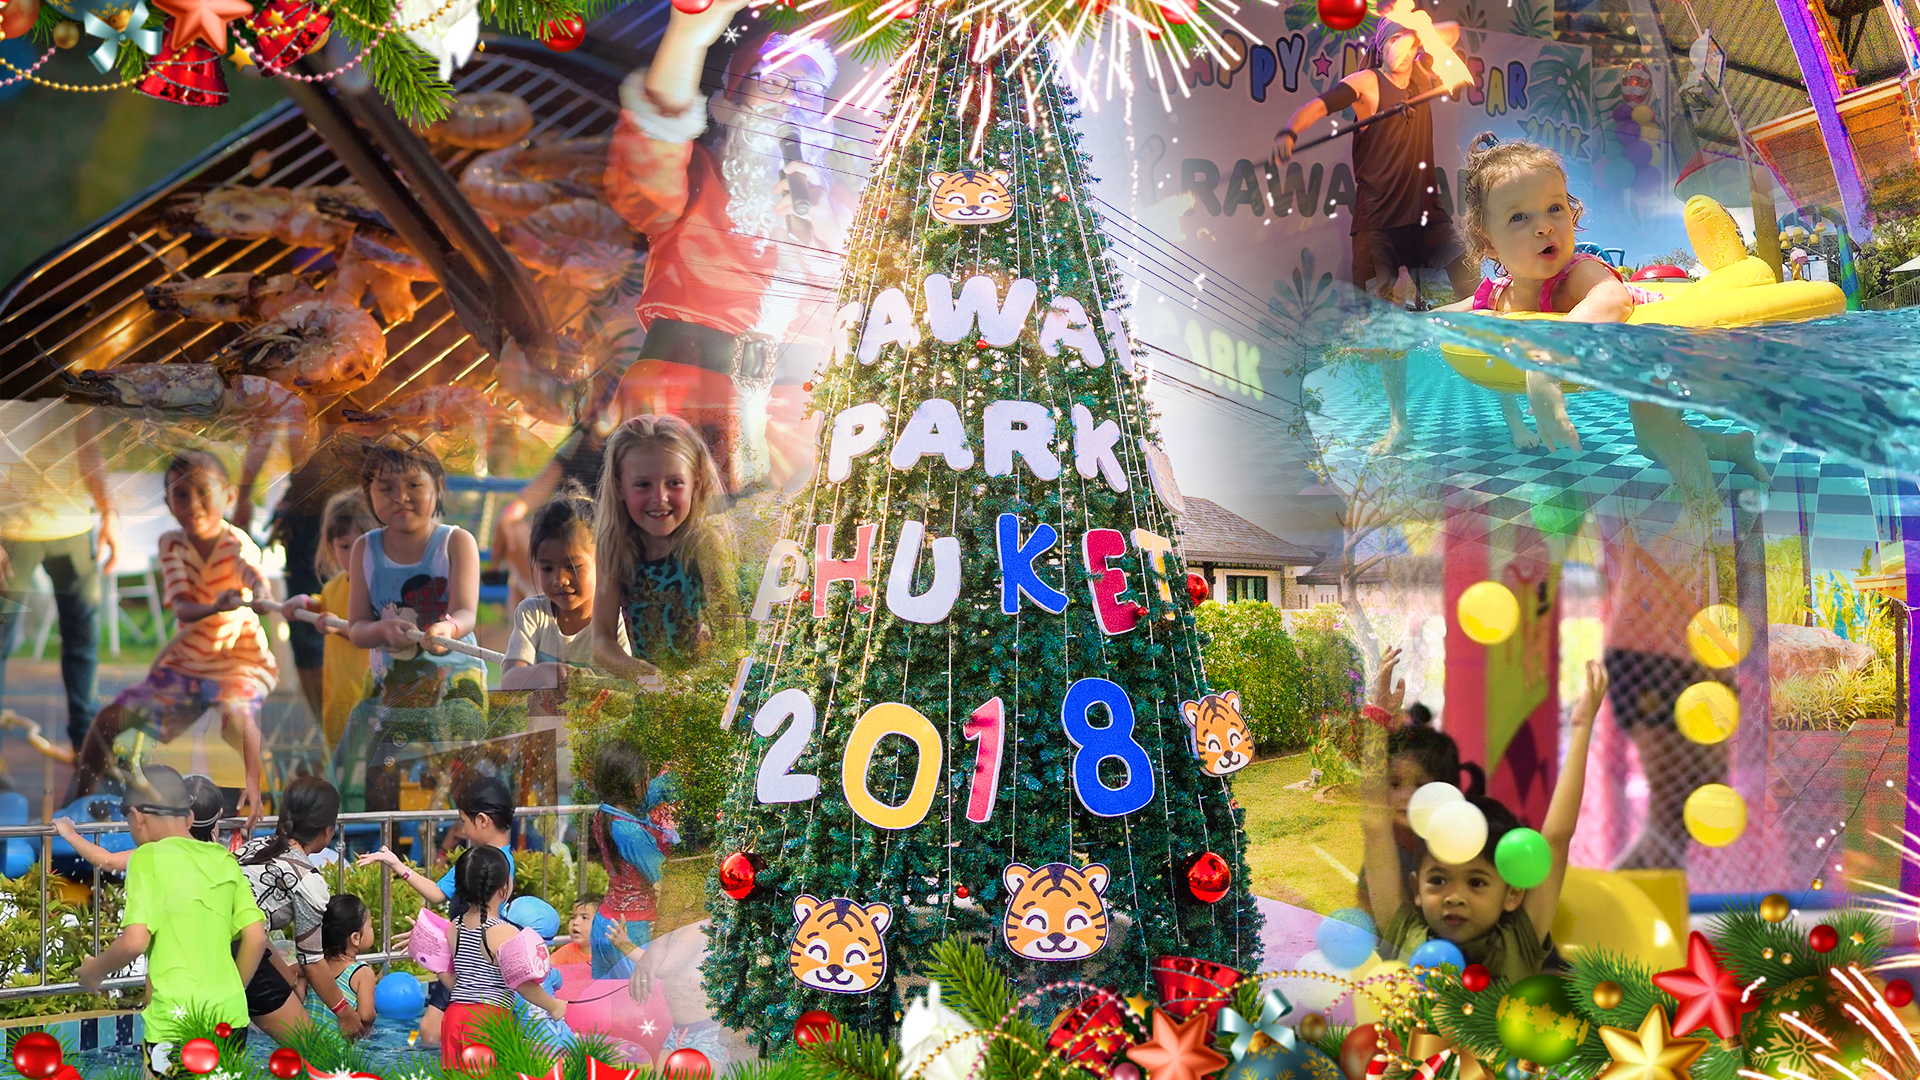 Promo for New Year at Park 2018